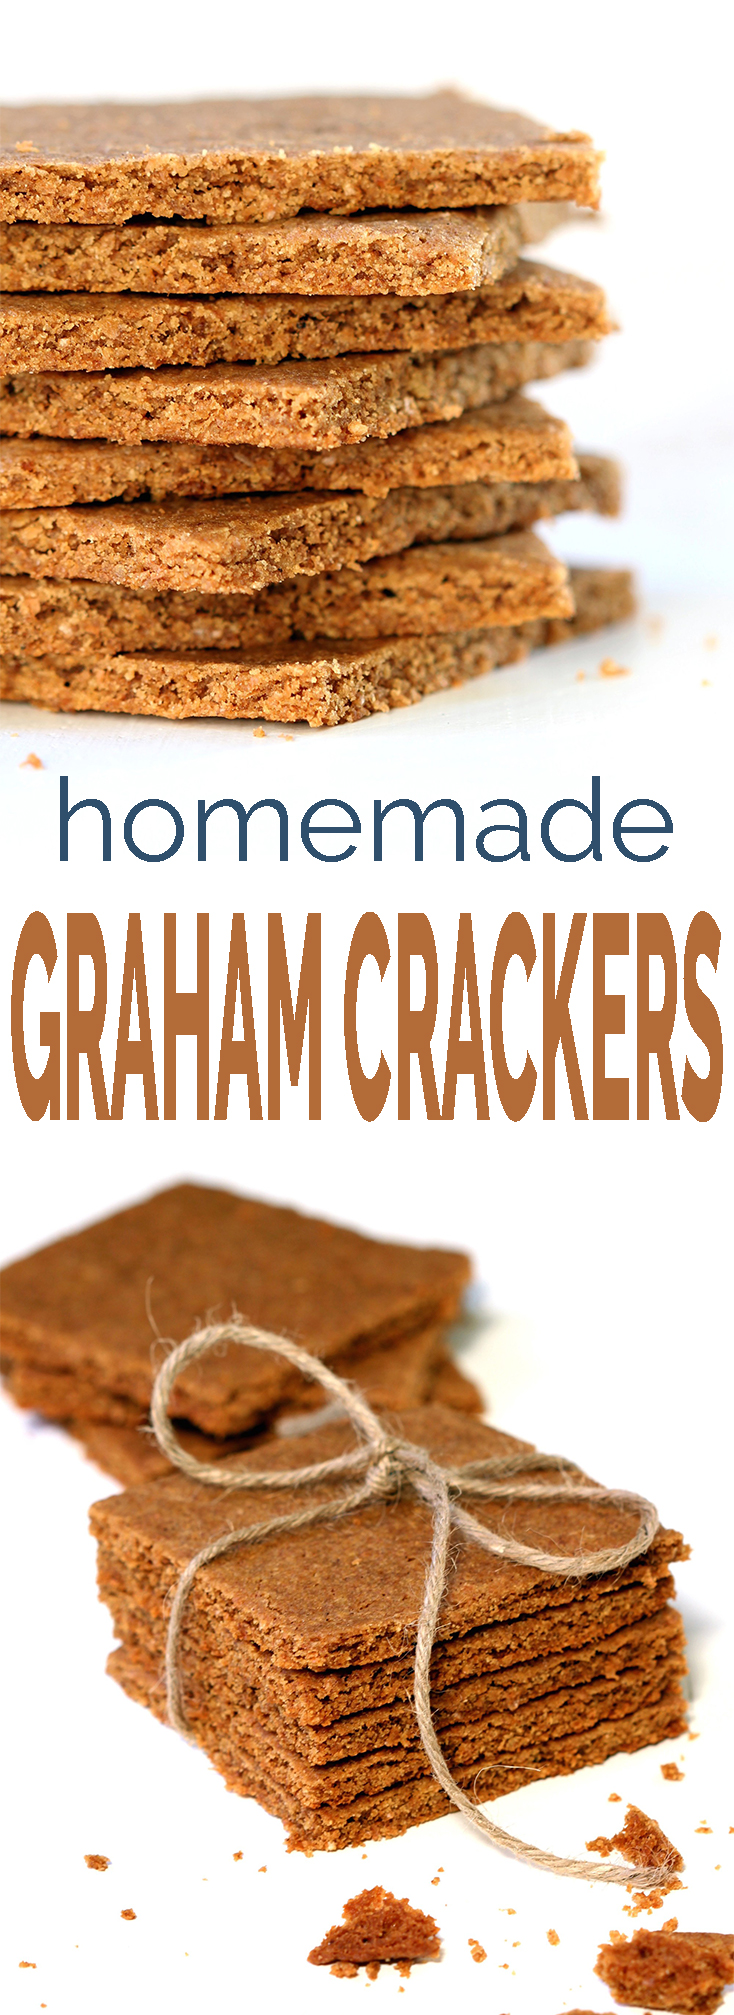 Store-bought graham crackers are full of funky ingredients.. making your own is easy. 9 ingredients, 10 minutes prep and you have light and buttery homemade graham crackers!